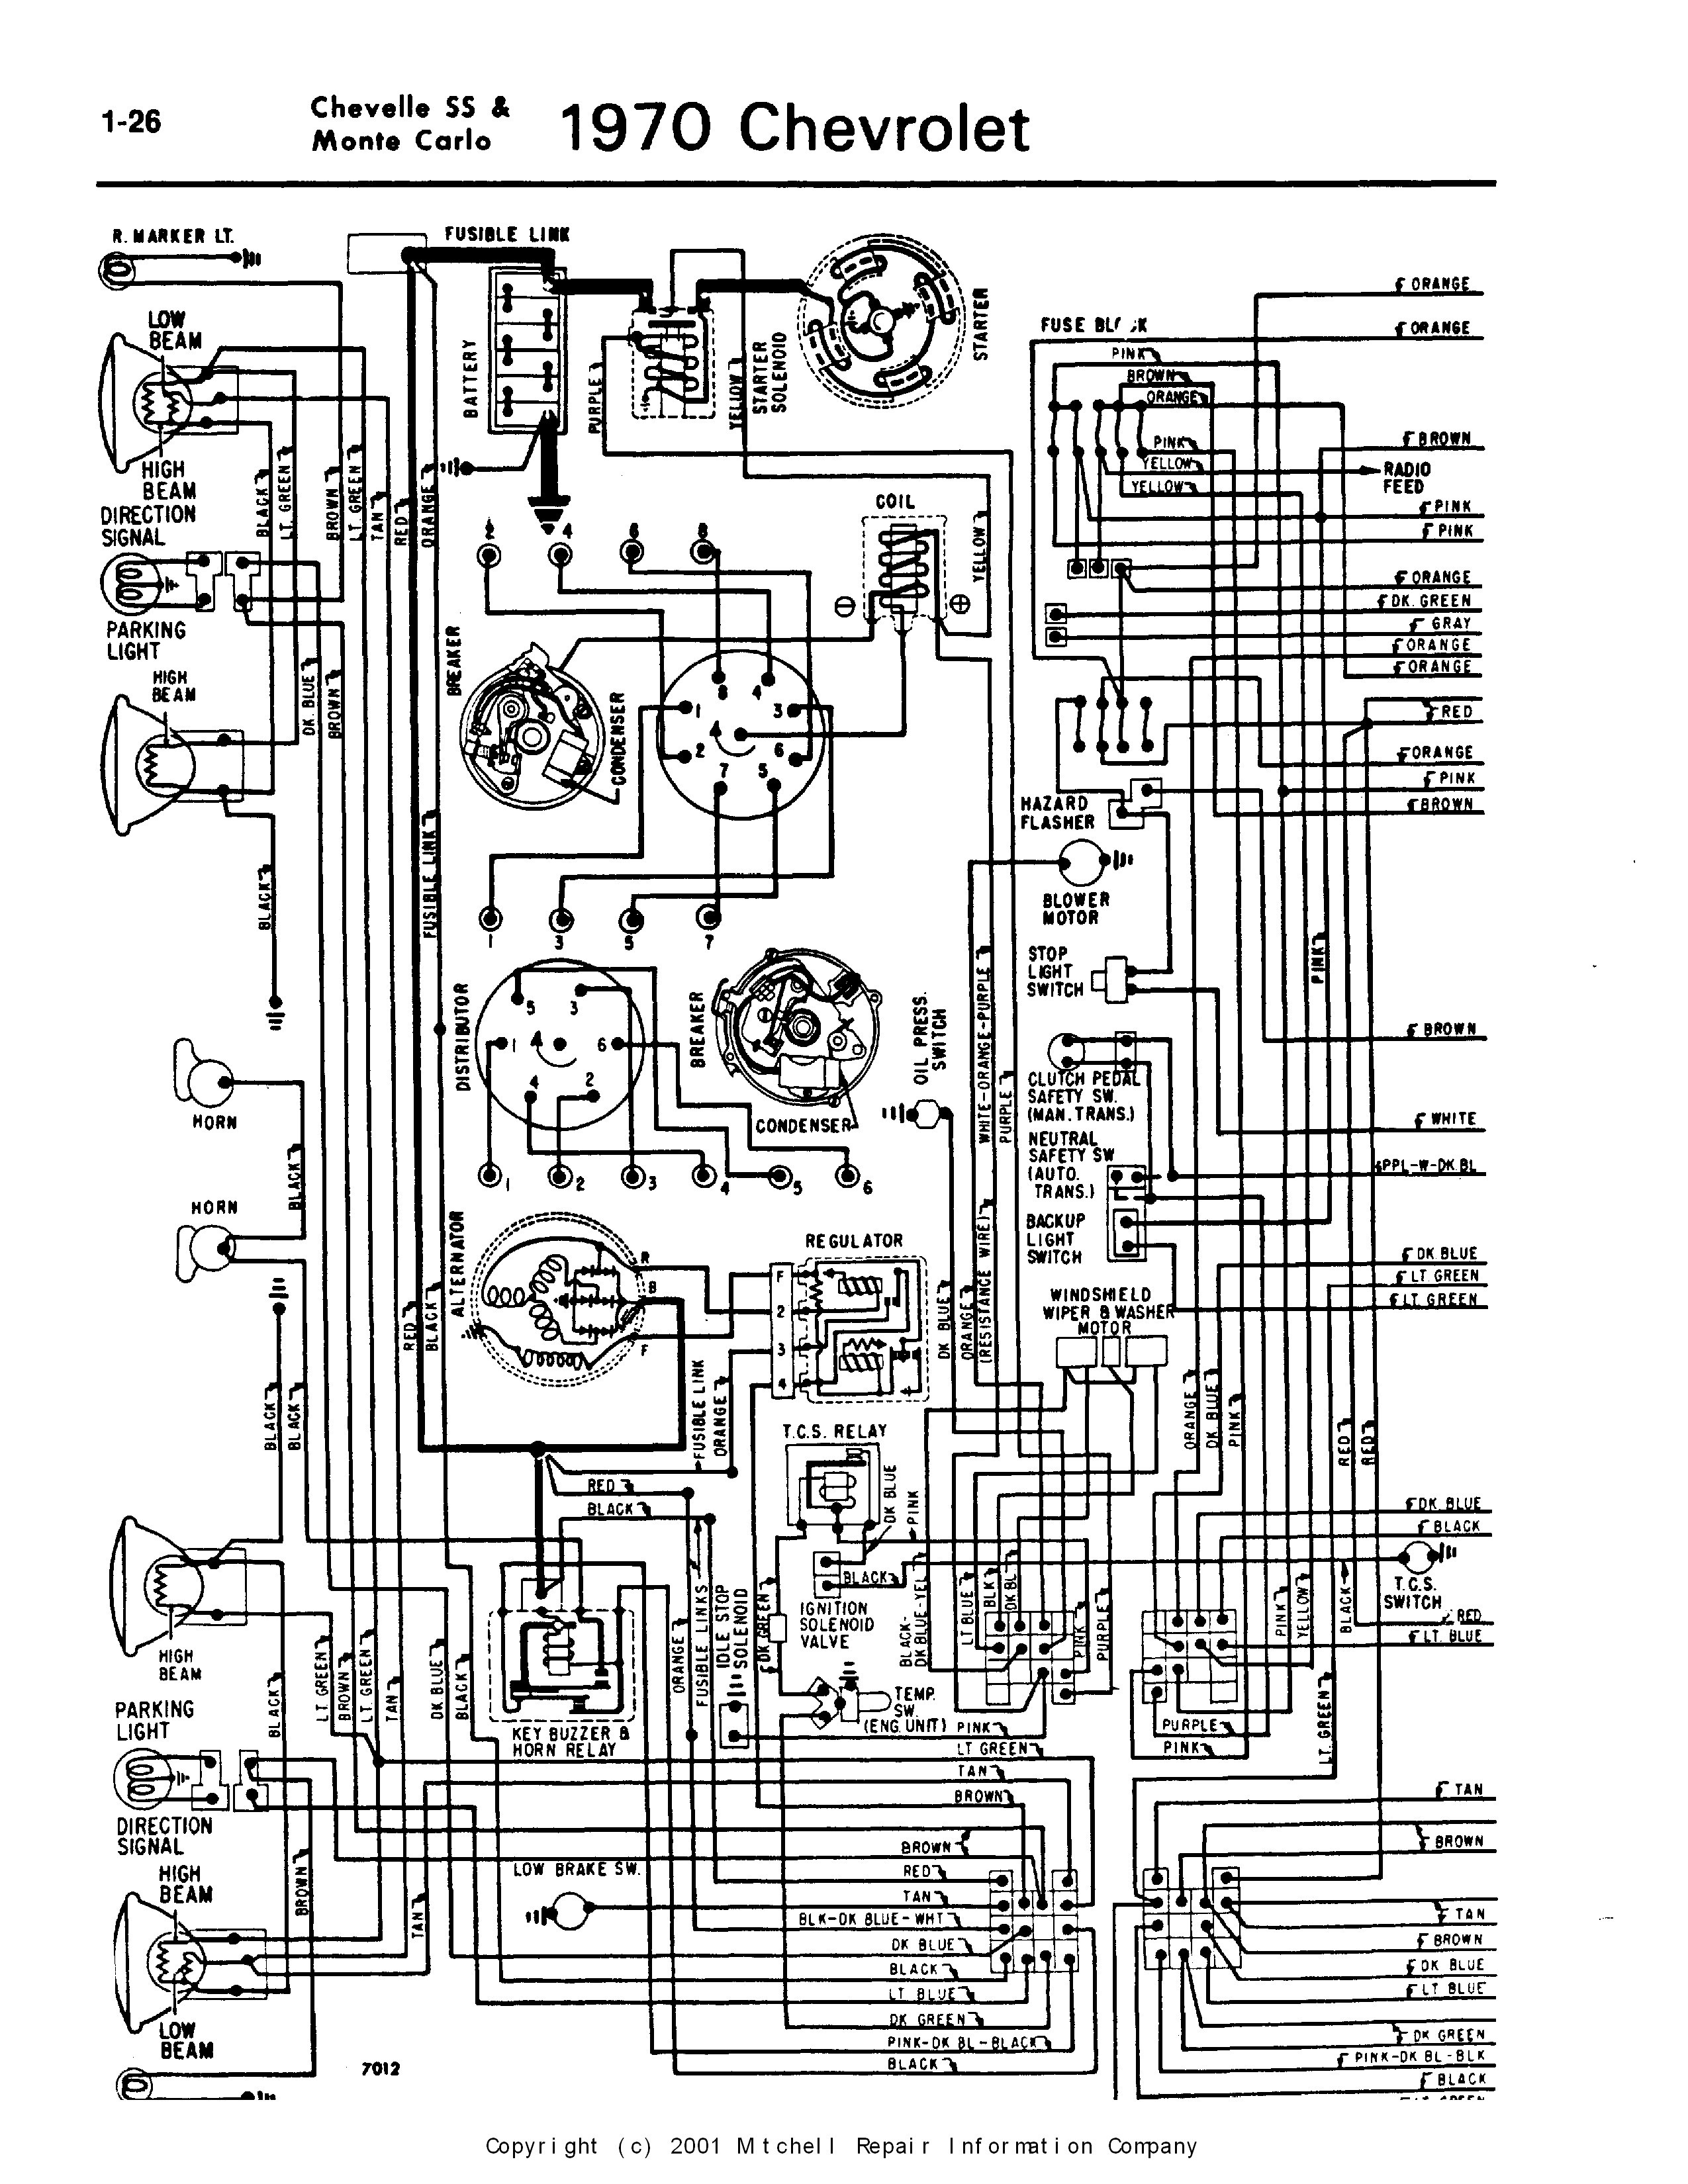 1966 Chevelle Dash Wiring Harness Diagram For - Wiring Diagrams Name  rock-academy - rock-academy.illabirintodellacreativita.itrock-academy.illabirintodellacreativita.it